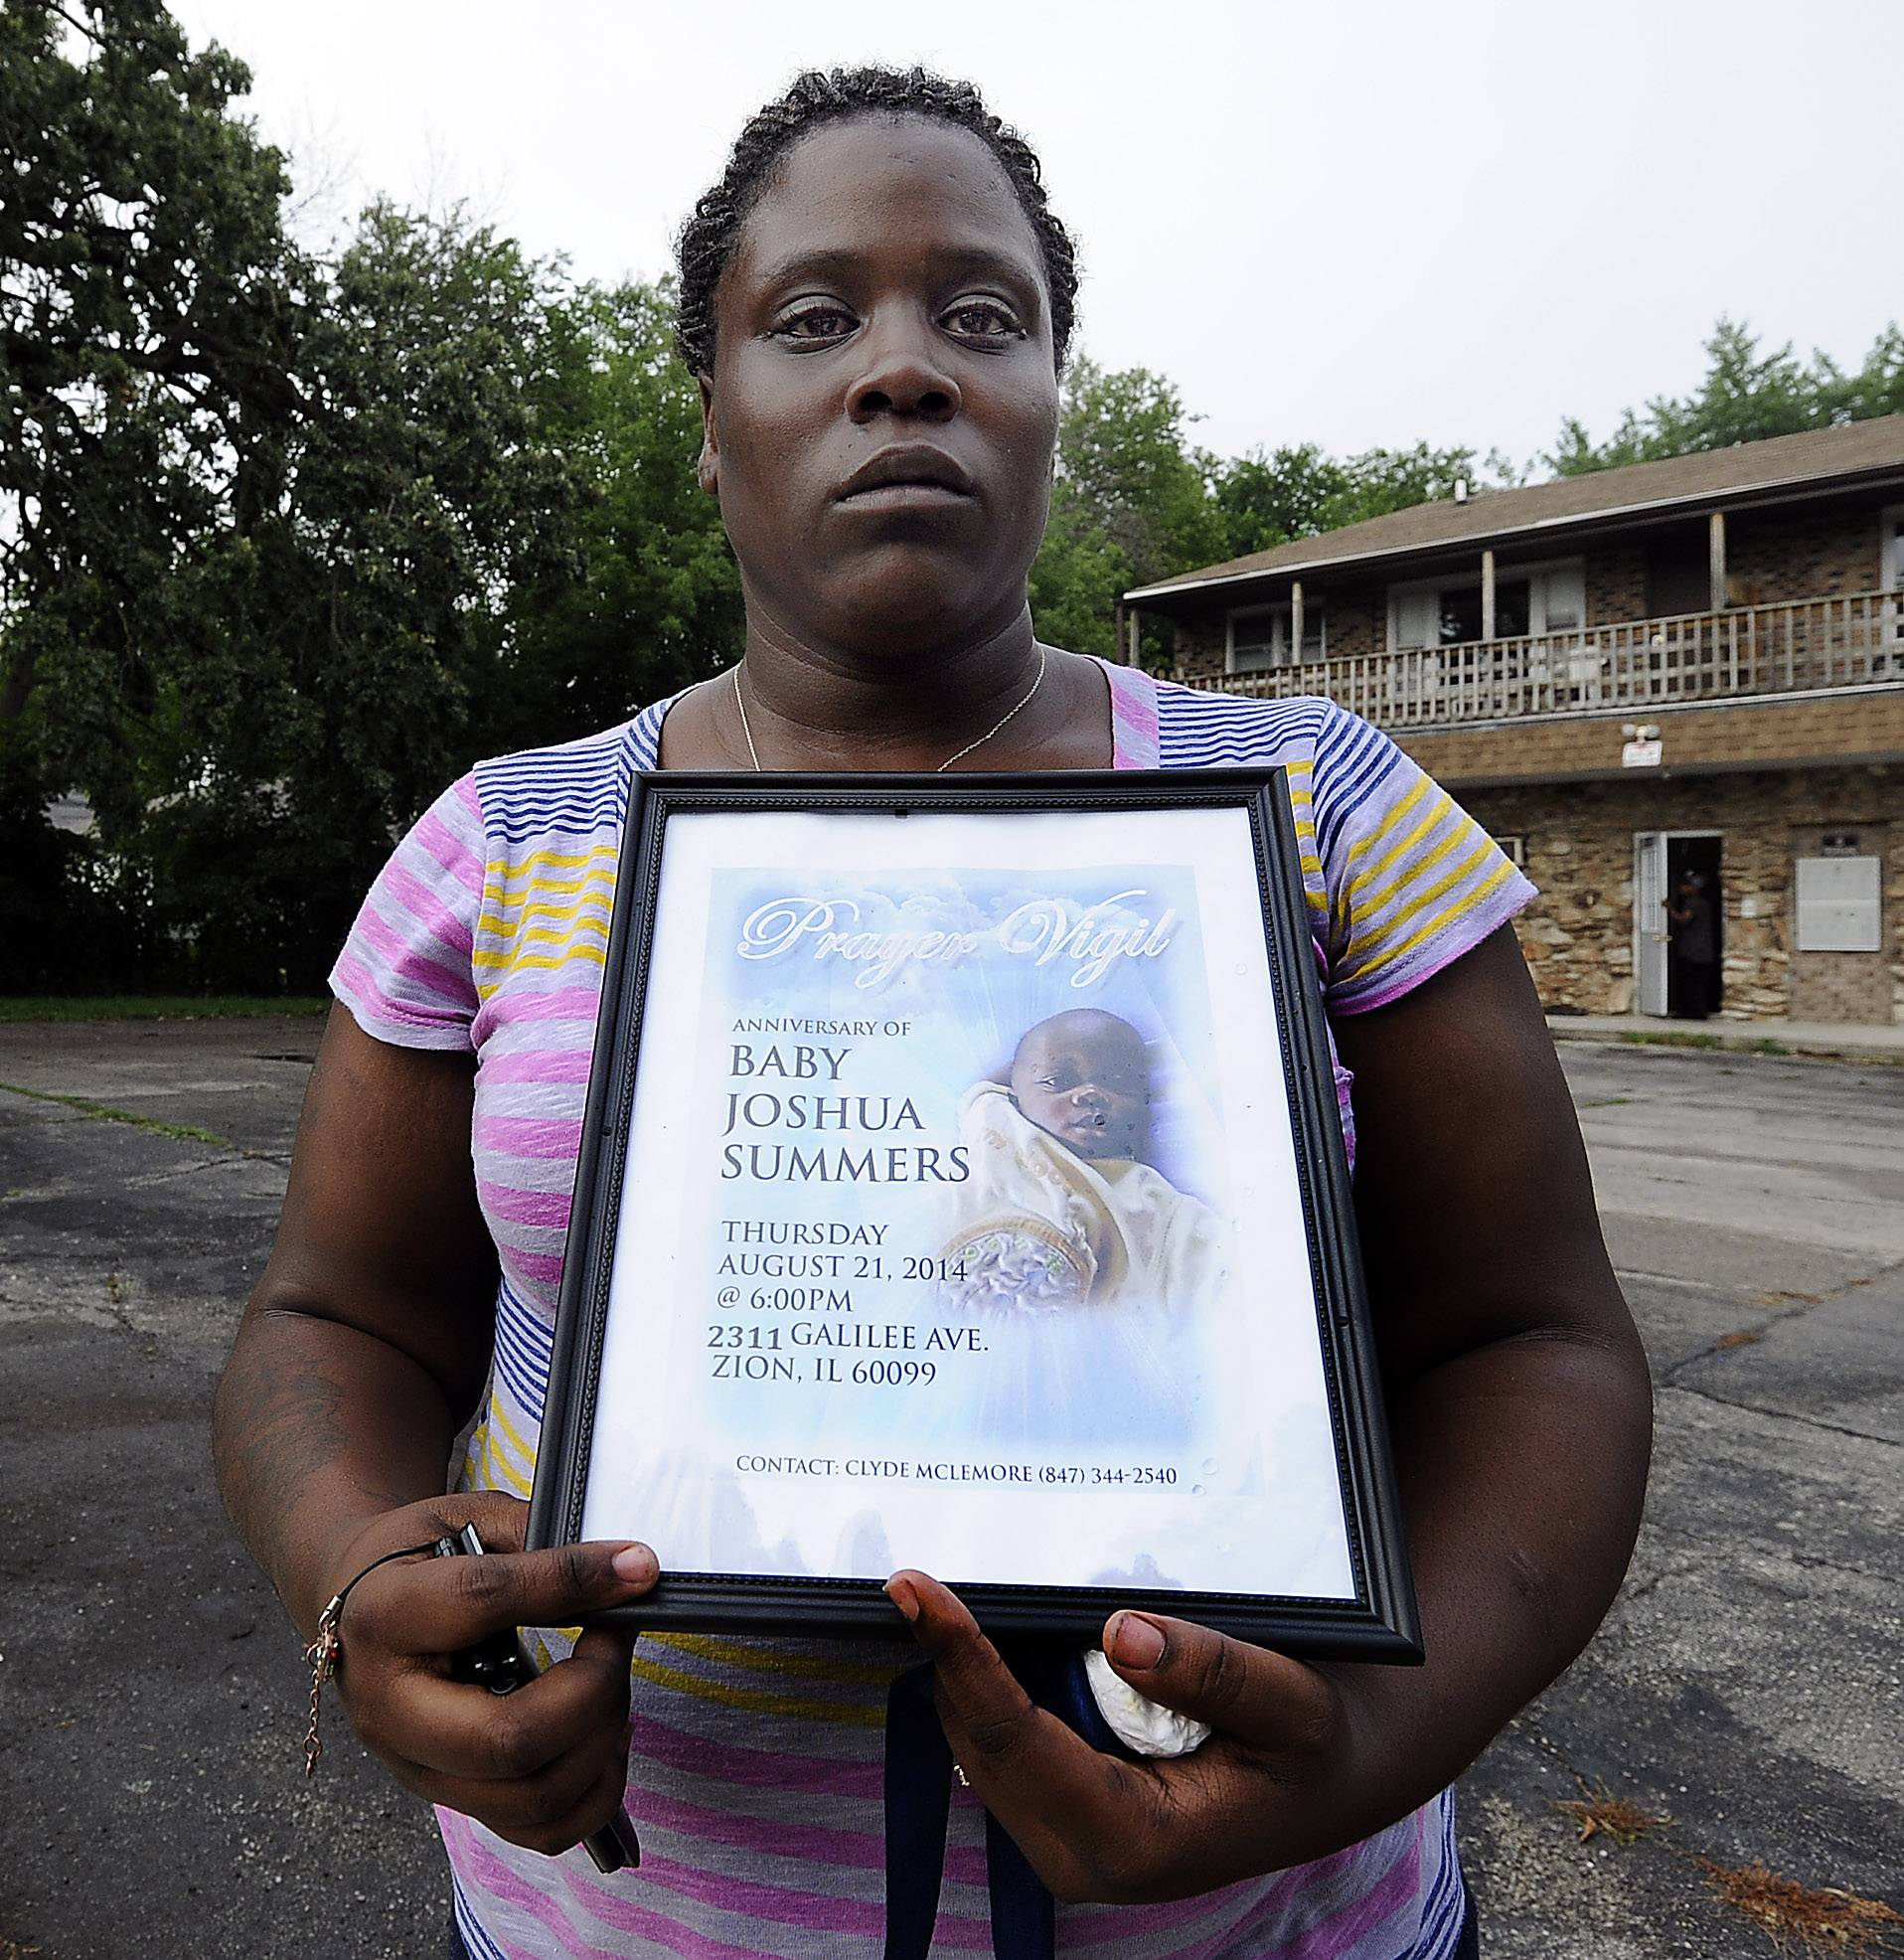 Mark Welsh/mwelsh@dailyherald.com Kisha Summeries, mother of baby Joshua holds a picture marking the one year anniversary of her baby's death in Zion at a prayer service held in his honor.